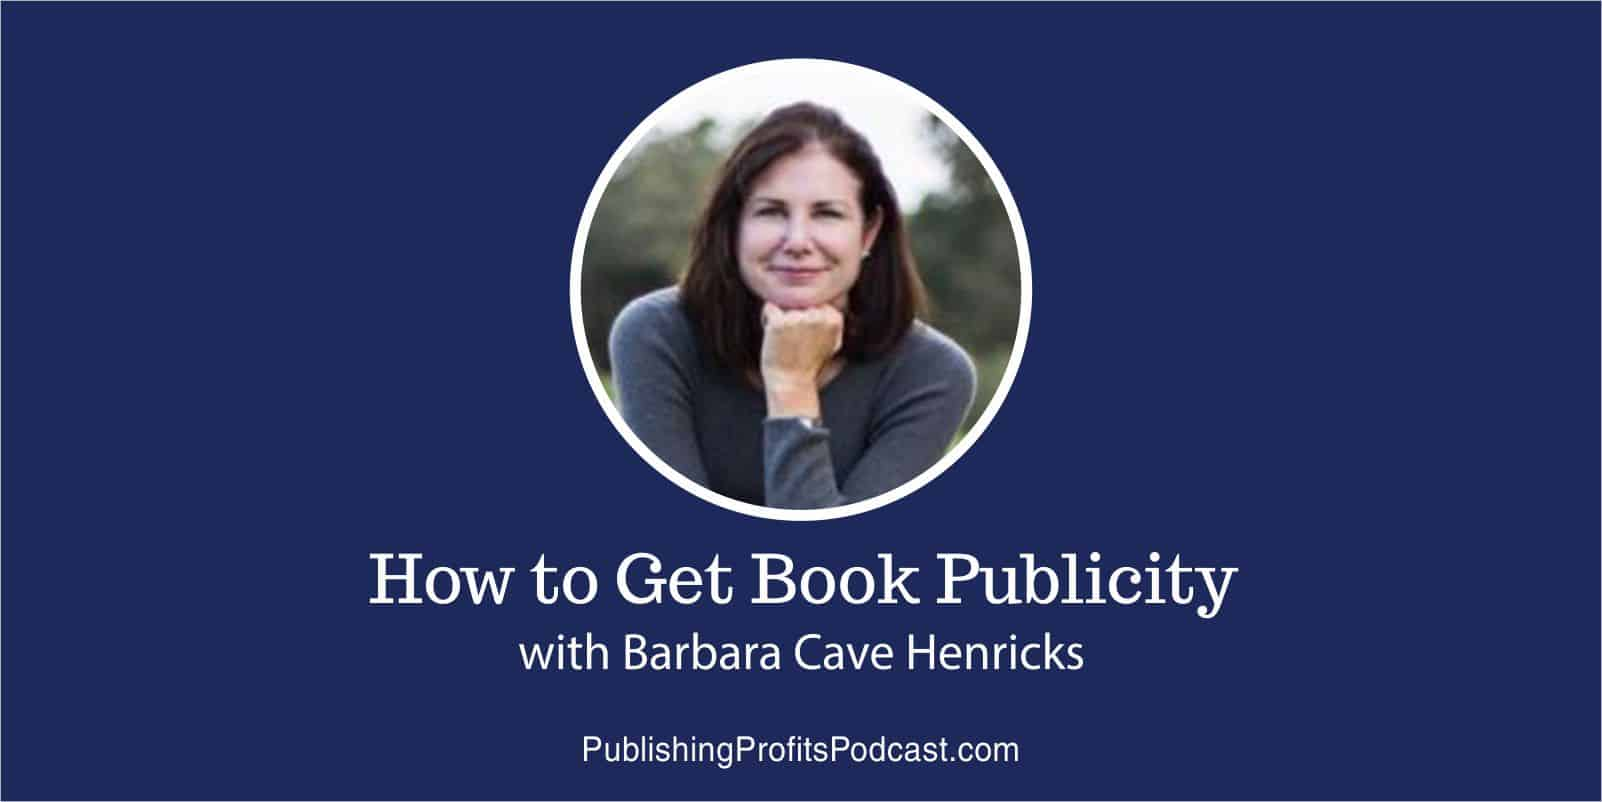 How to Get Book Publicity Barbara Cave Henricks header